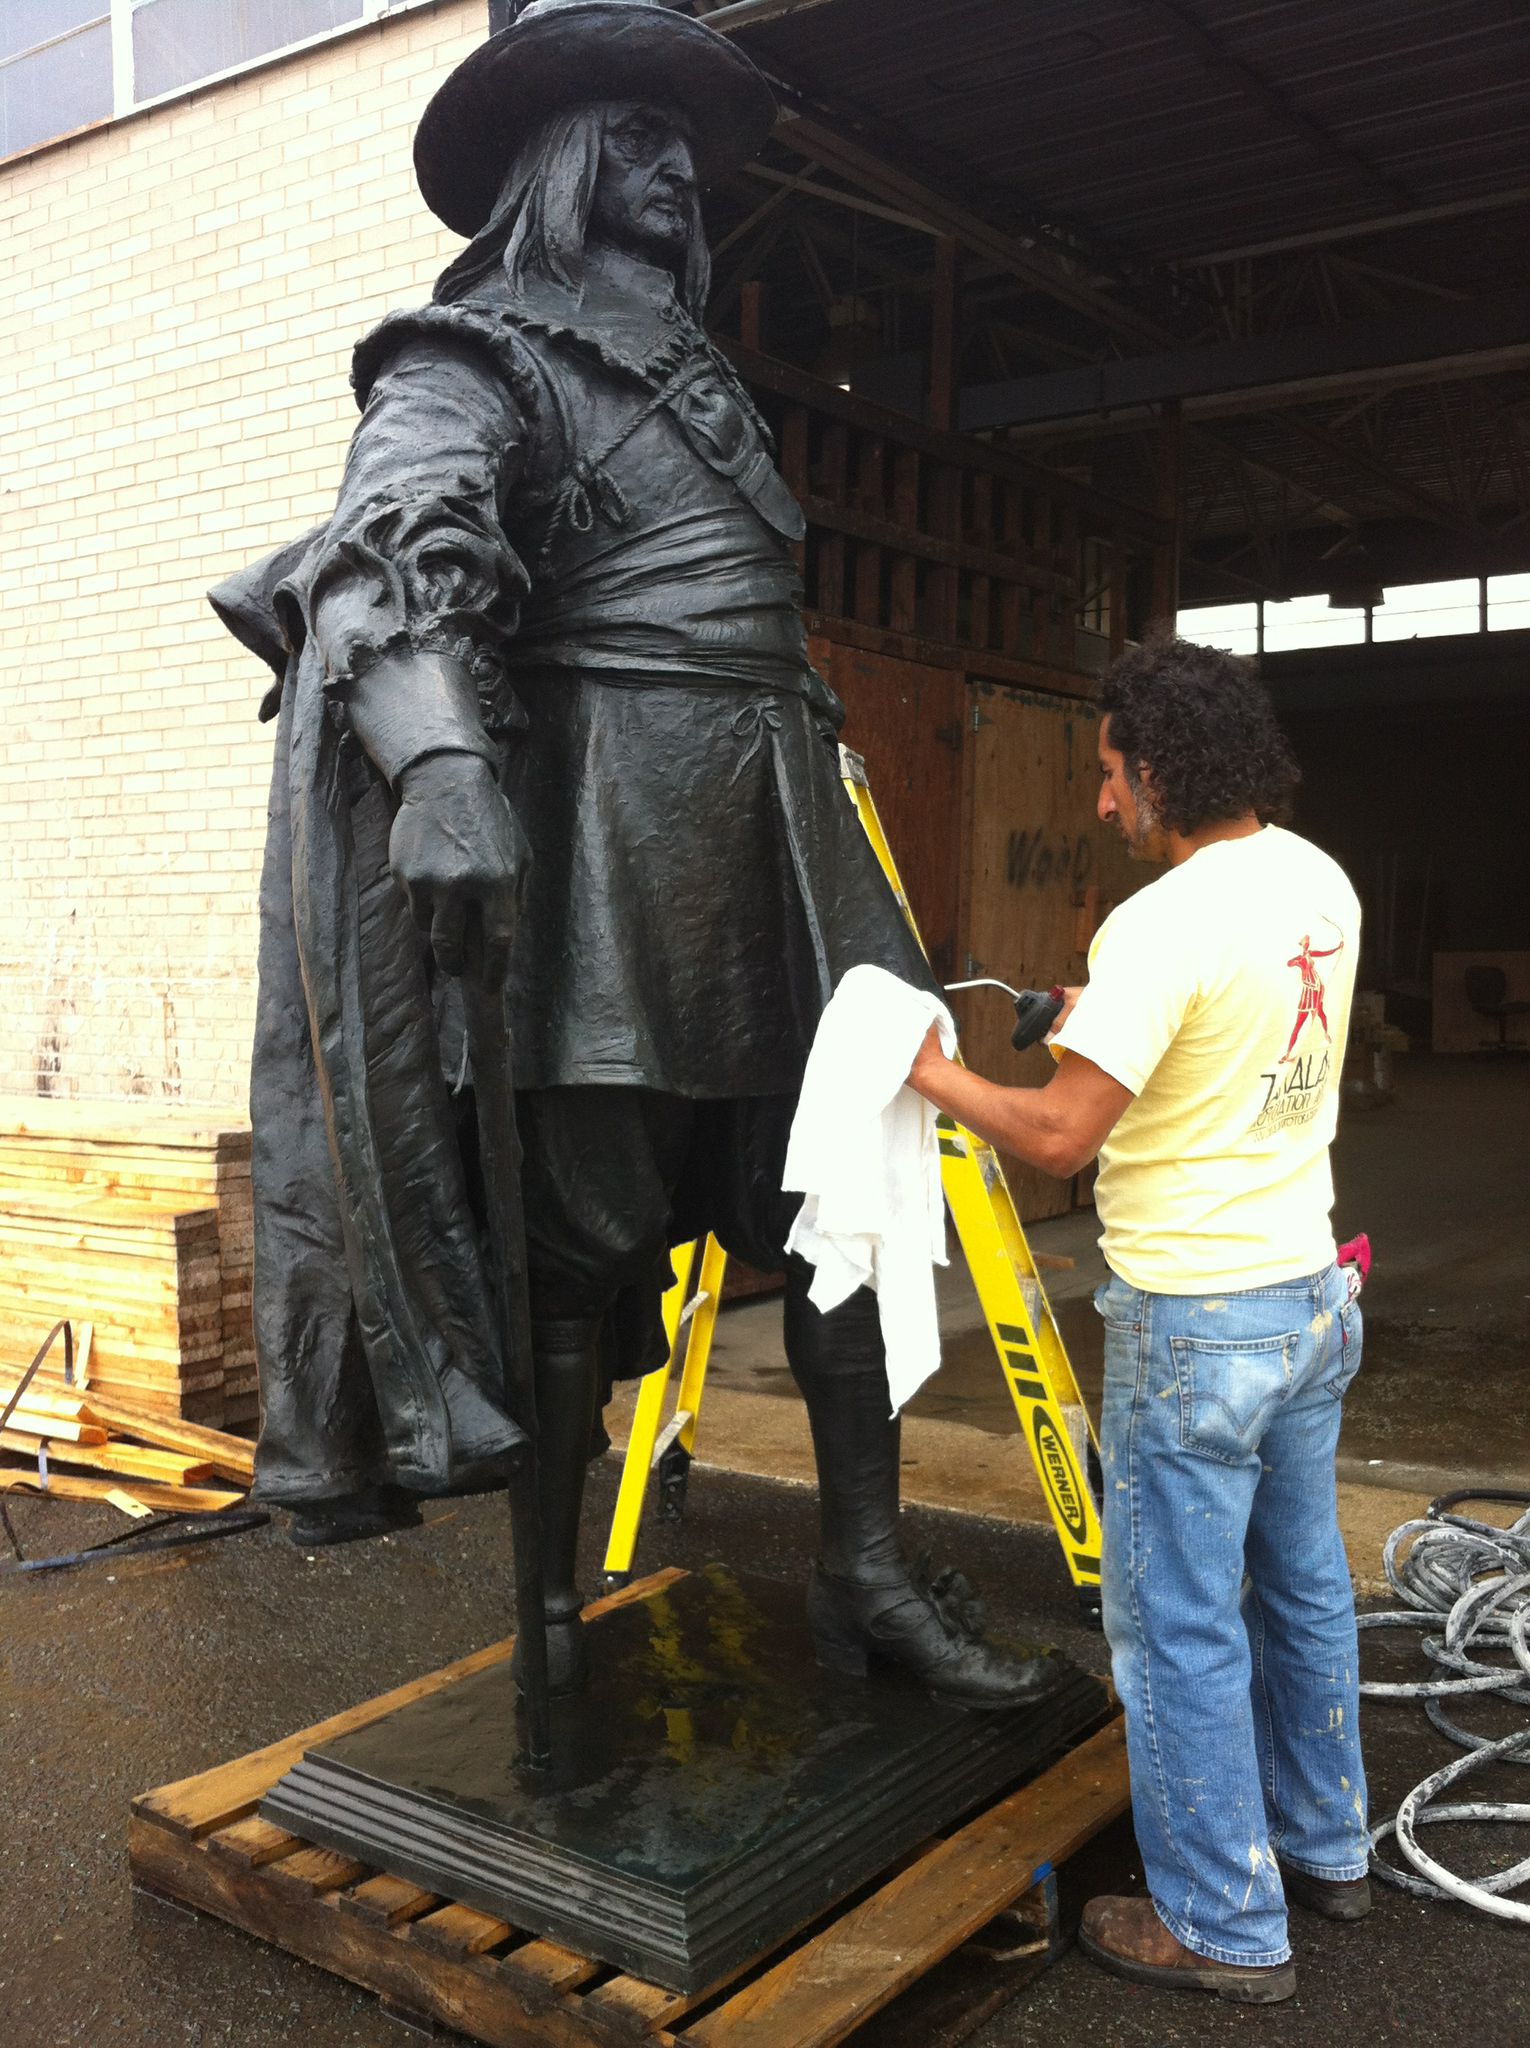 Peter being cleaned upon being removed from storage,